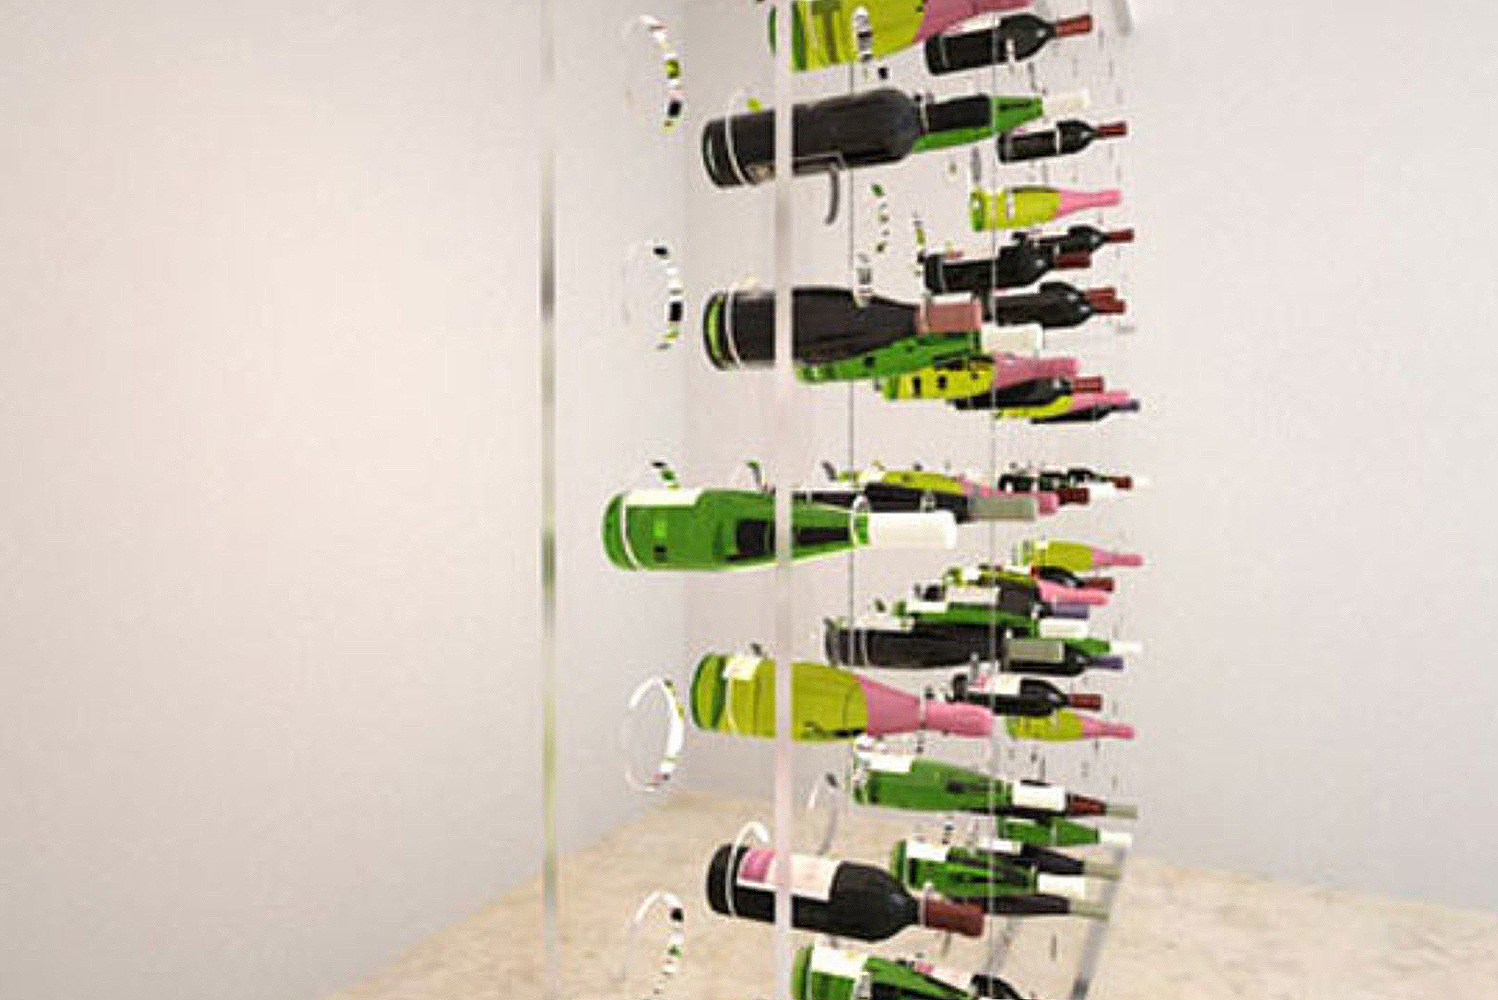 The Invisible wine rack series uses sturdy 1/2-inch thick, clear acrylic that gives it a transparent look.